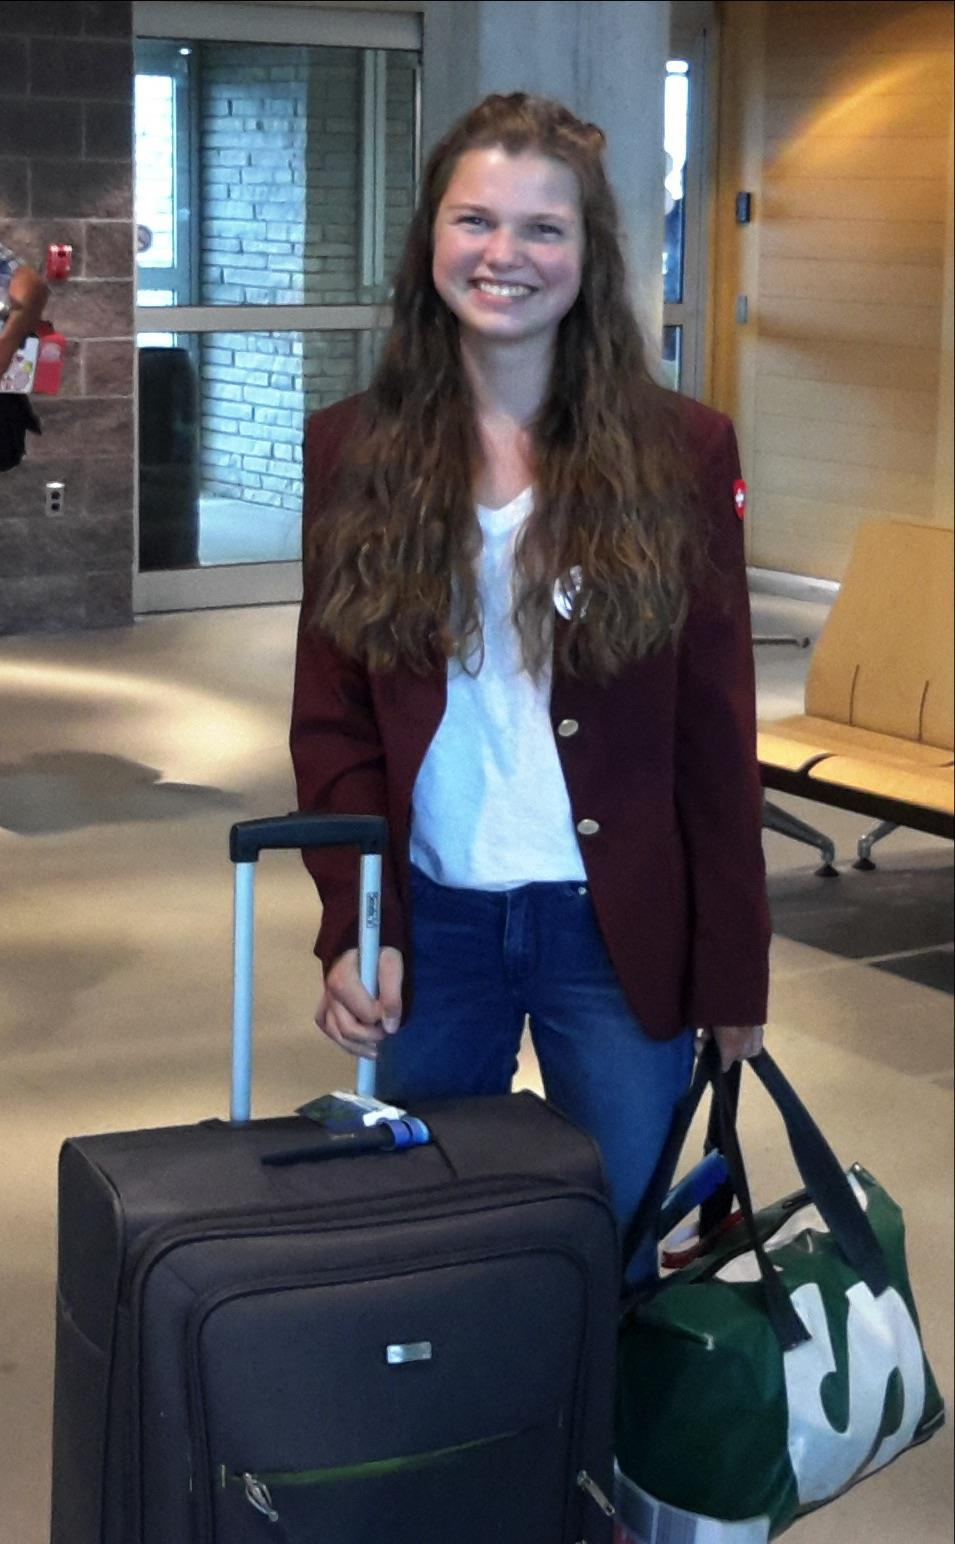 The Club Welcomed Livia Huwyler 2016 2017 Youth Exchange In Bound Student To North Bay On Monday August 22nd Livia Is From Muttenz Switzerland Rotary